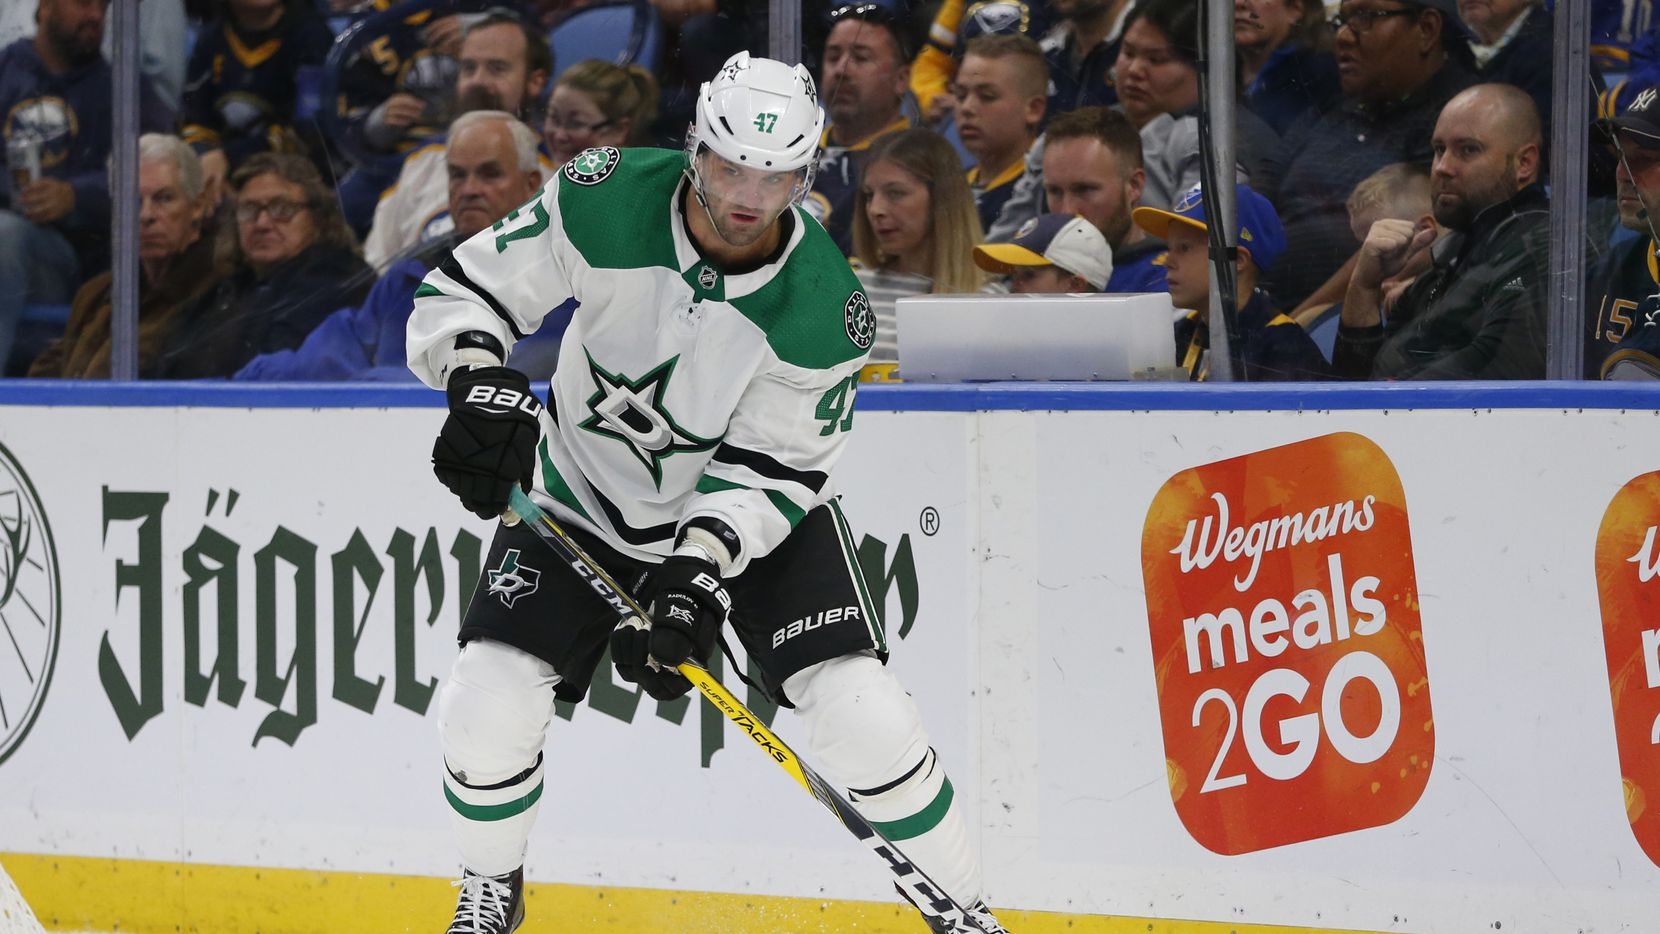 Dallas Stars forward Alexander Radulov (47) controls the puck during the second period of an NHL hockey game against the Buffalo Sabres, Monday, Oct. 14, 2019, in Buffalo N.Y.